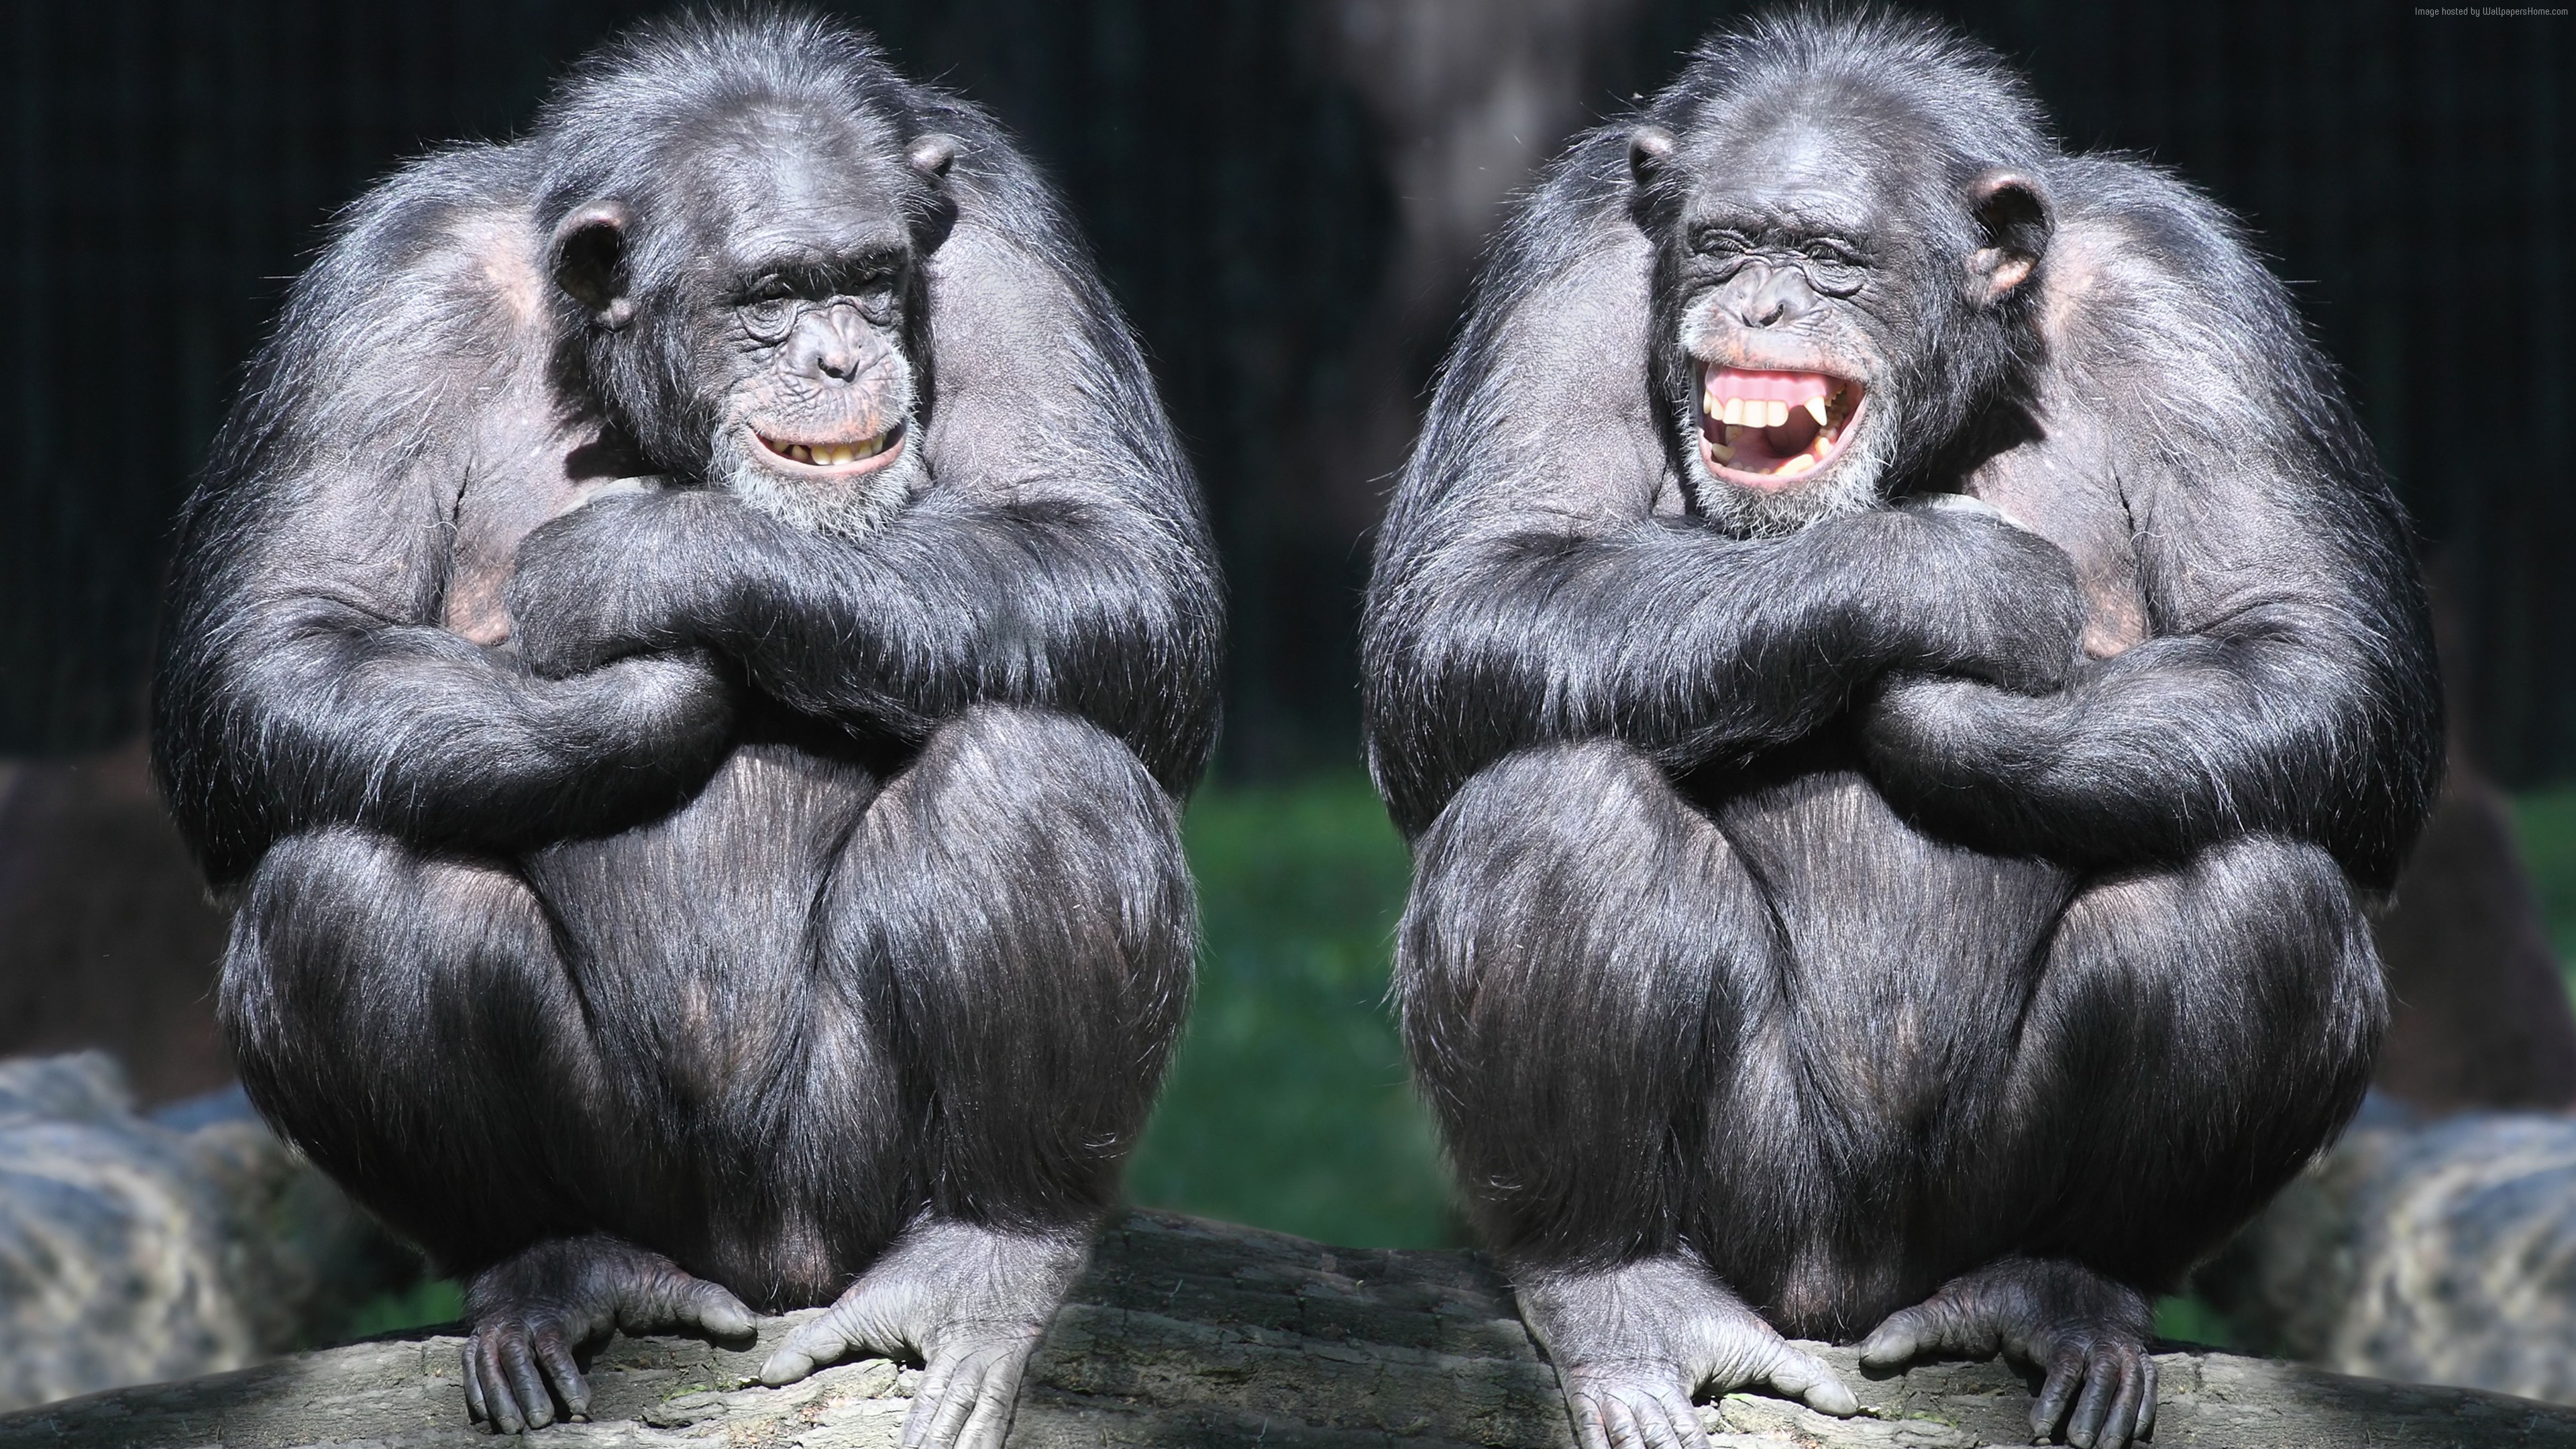 Wallpaper chimpanzee, couple, cute animals, monkey, funny, Animals